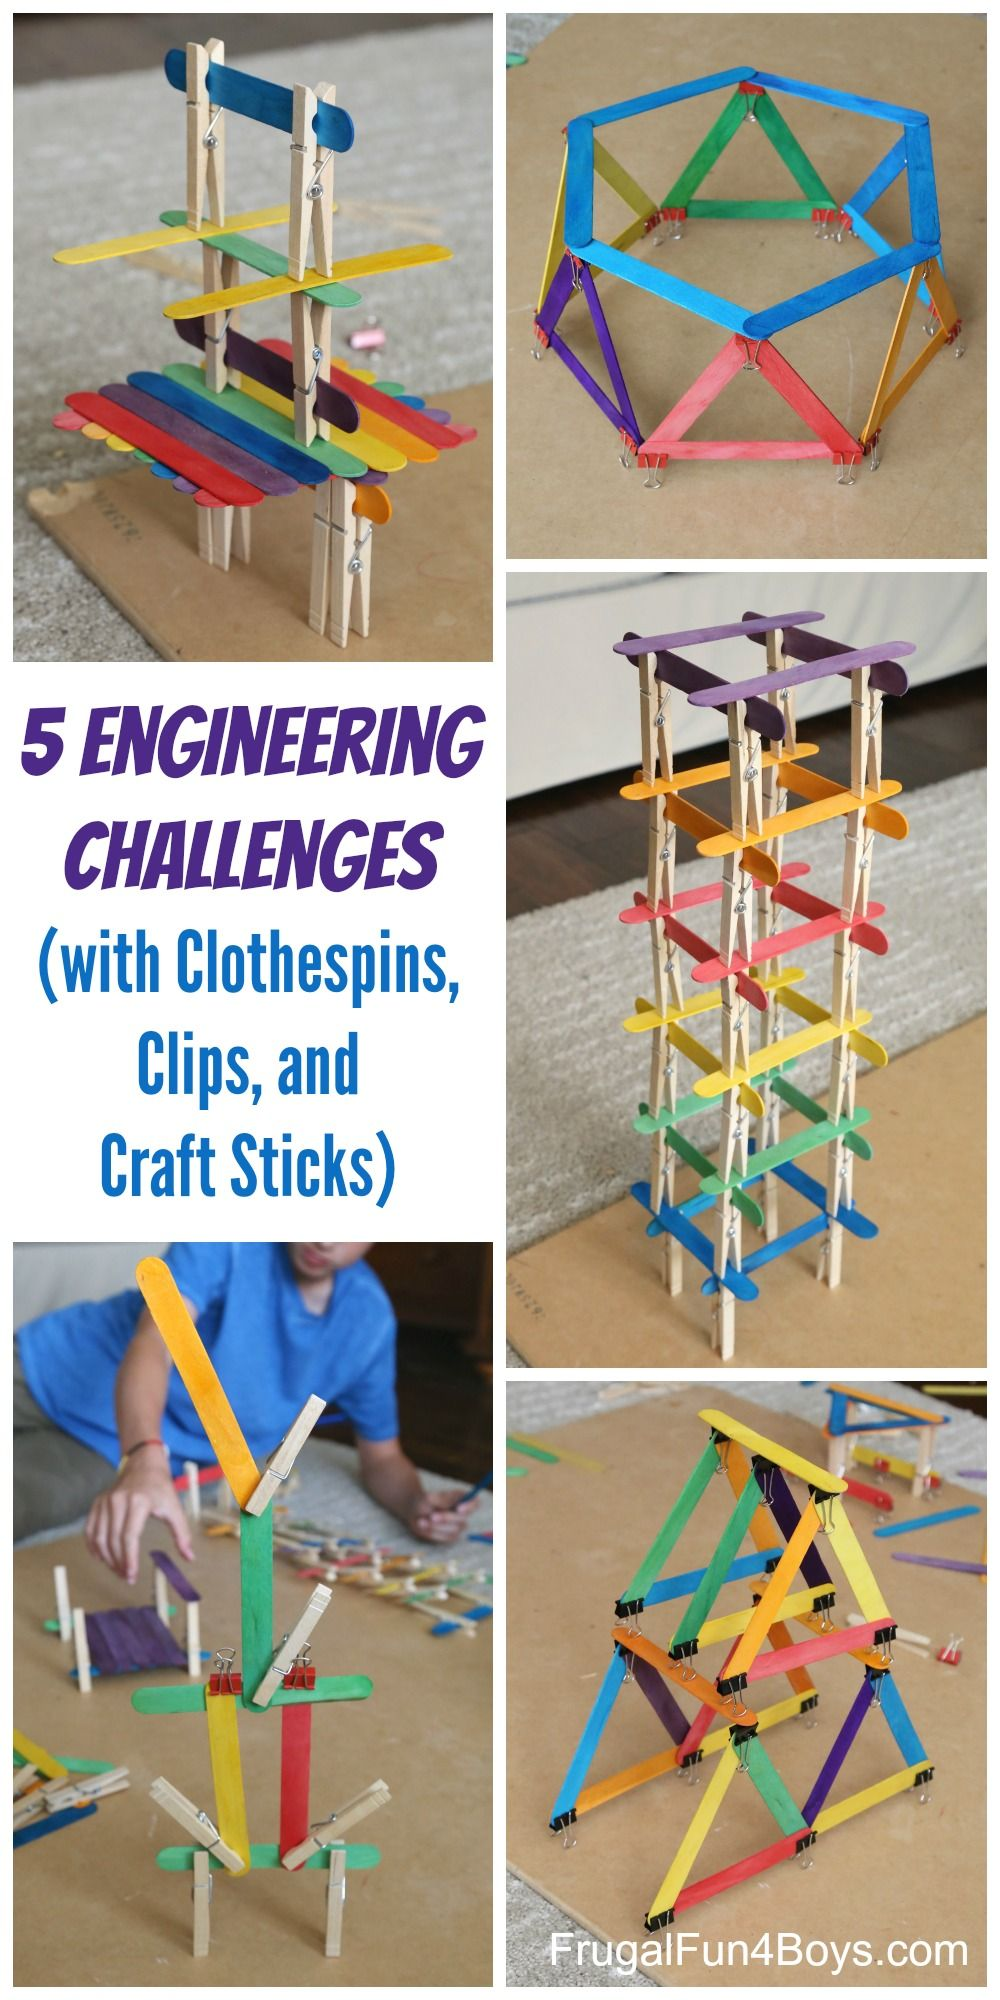 5 Engineering Challenges with Clothespins, Binder Clips, and Craft Sticks - Frugal Fun For Boys